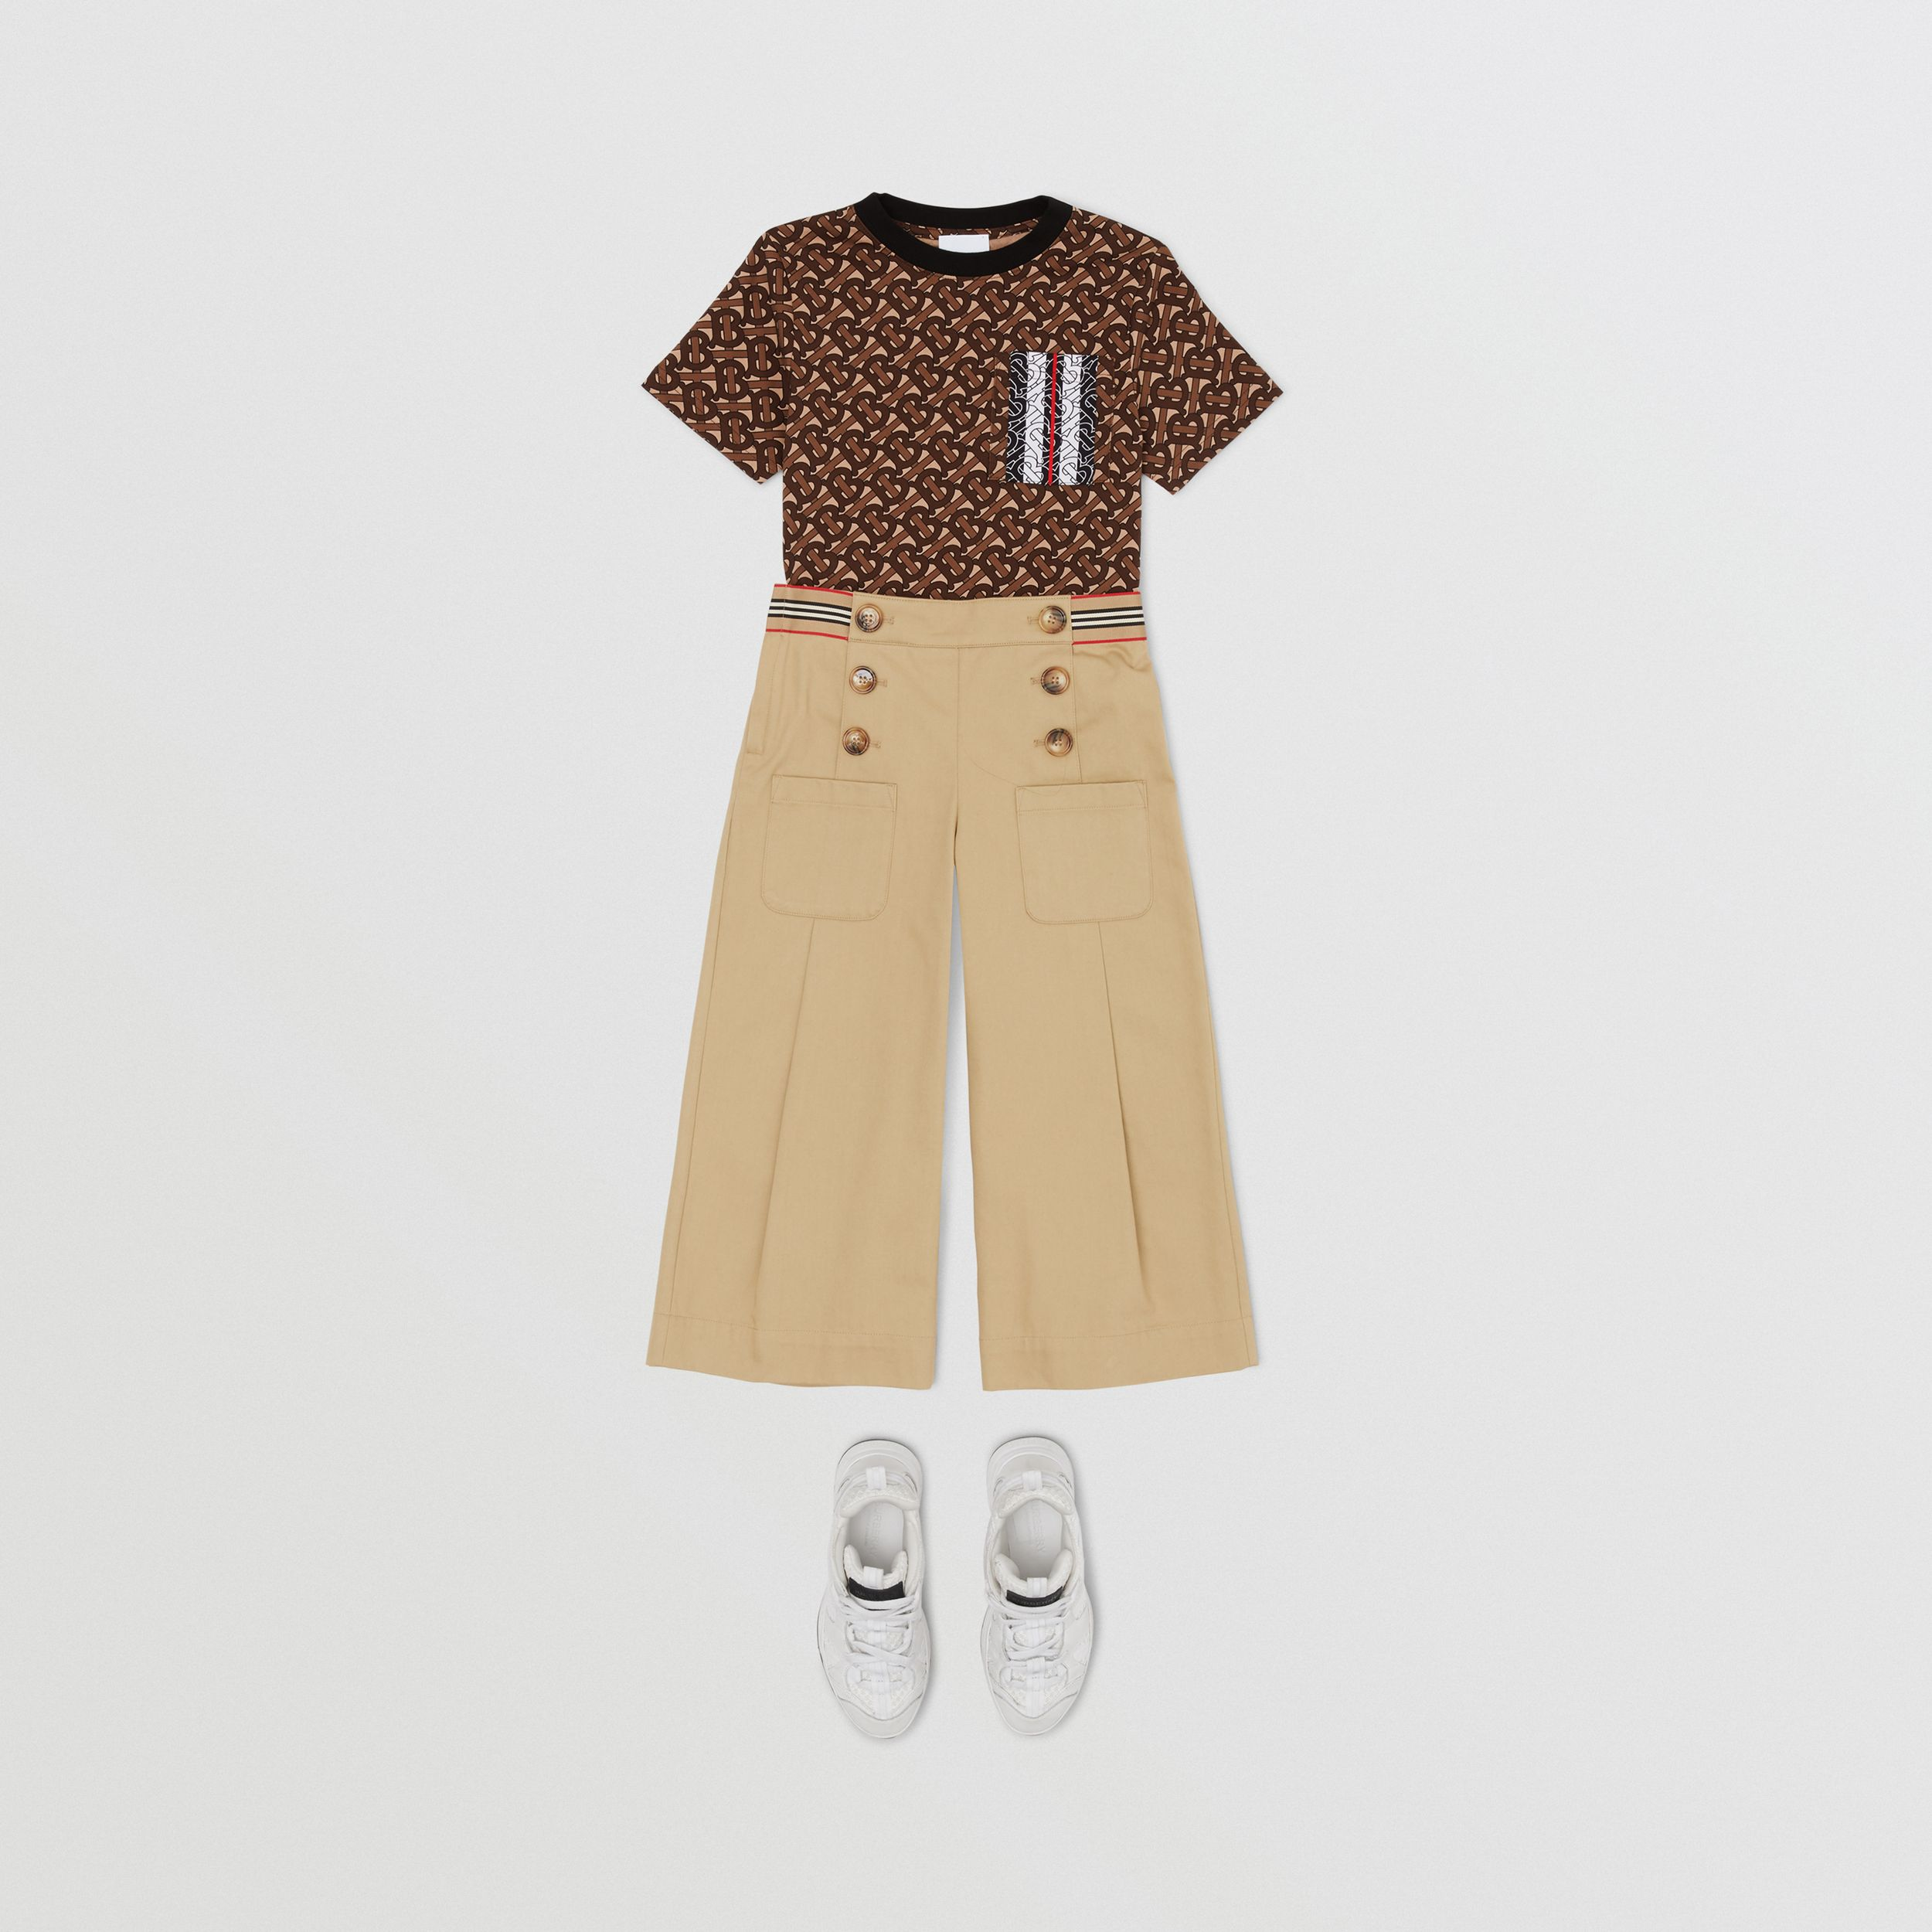 Monogram Stripe Print Cotton T-shirt in Bridle Brown | Burberry - 3